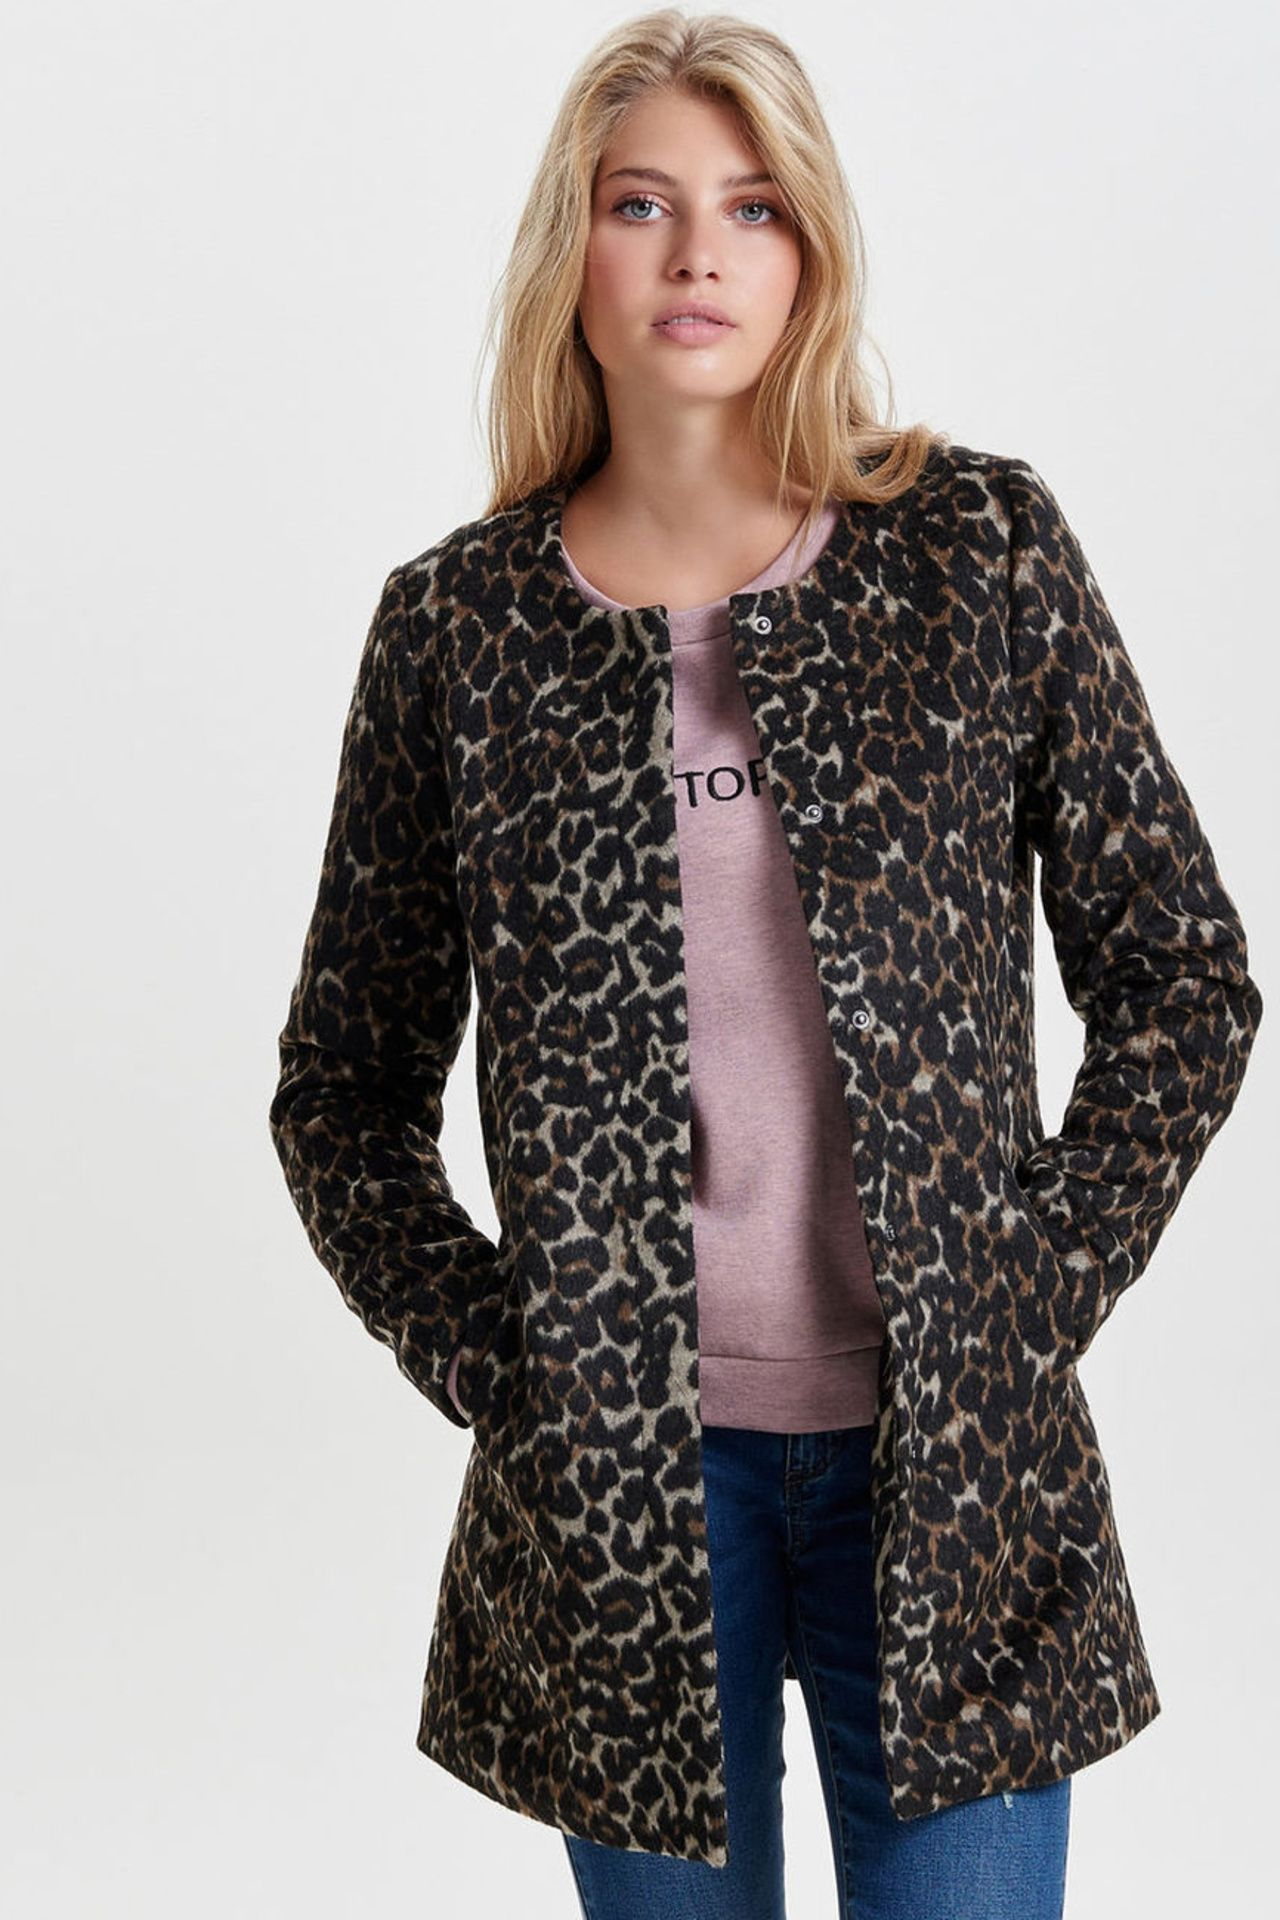 Winterjas Tijgerprint.Only Jas Met Luipaardprint In 2019 Fw18 19 Leopardprint